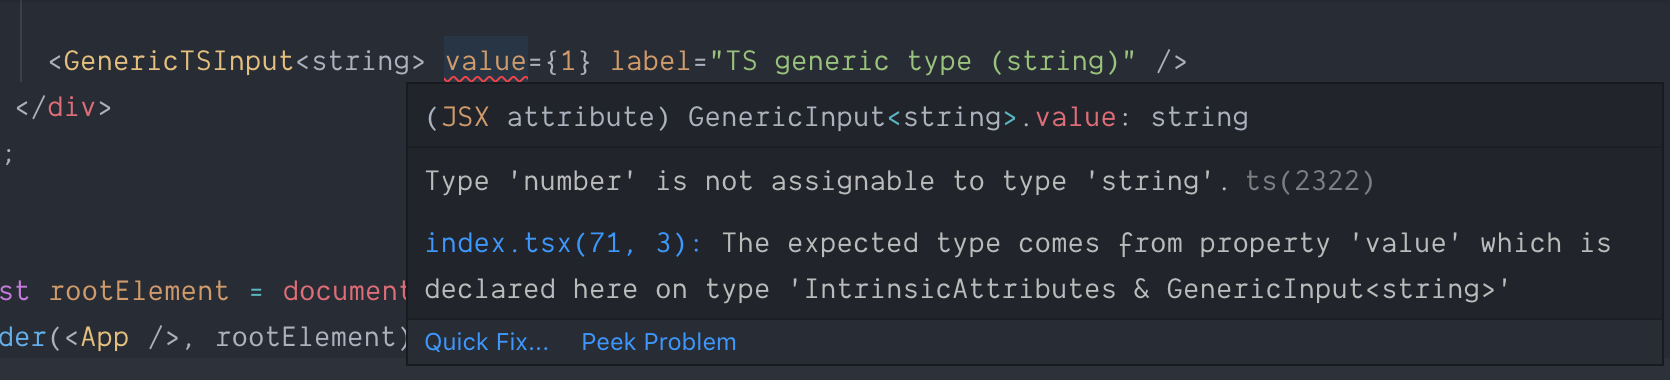 TypeScript error for generics